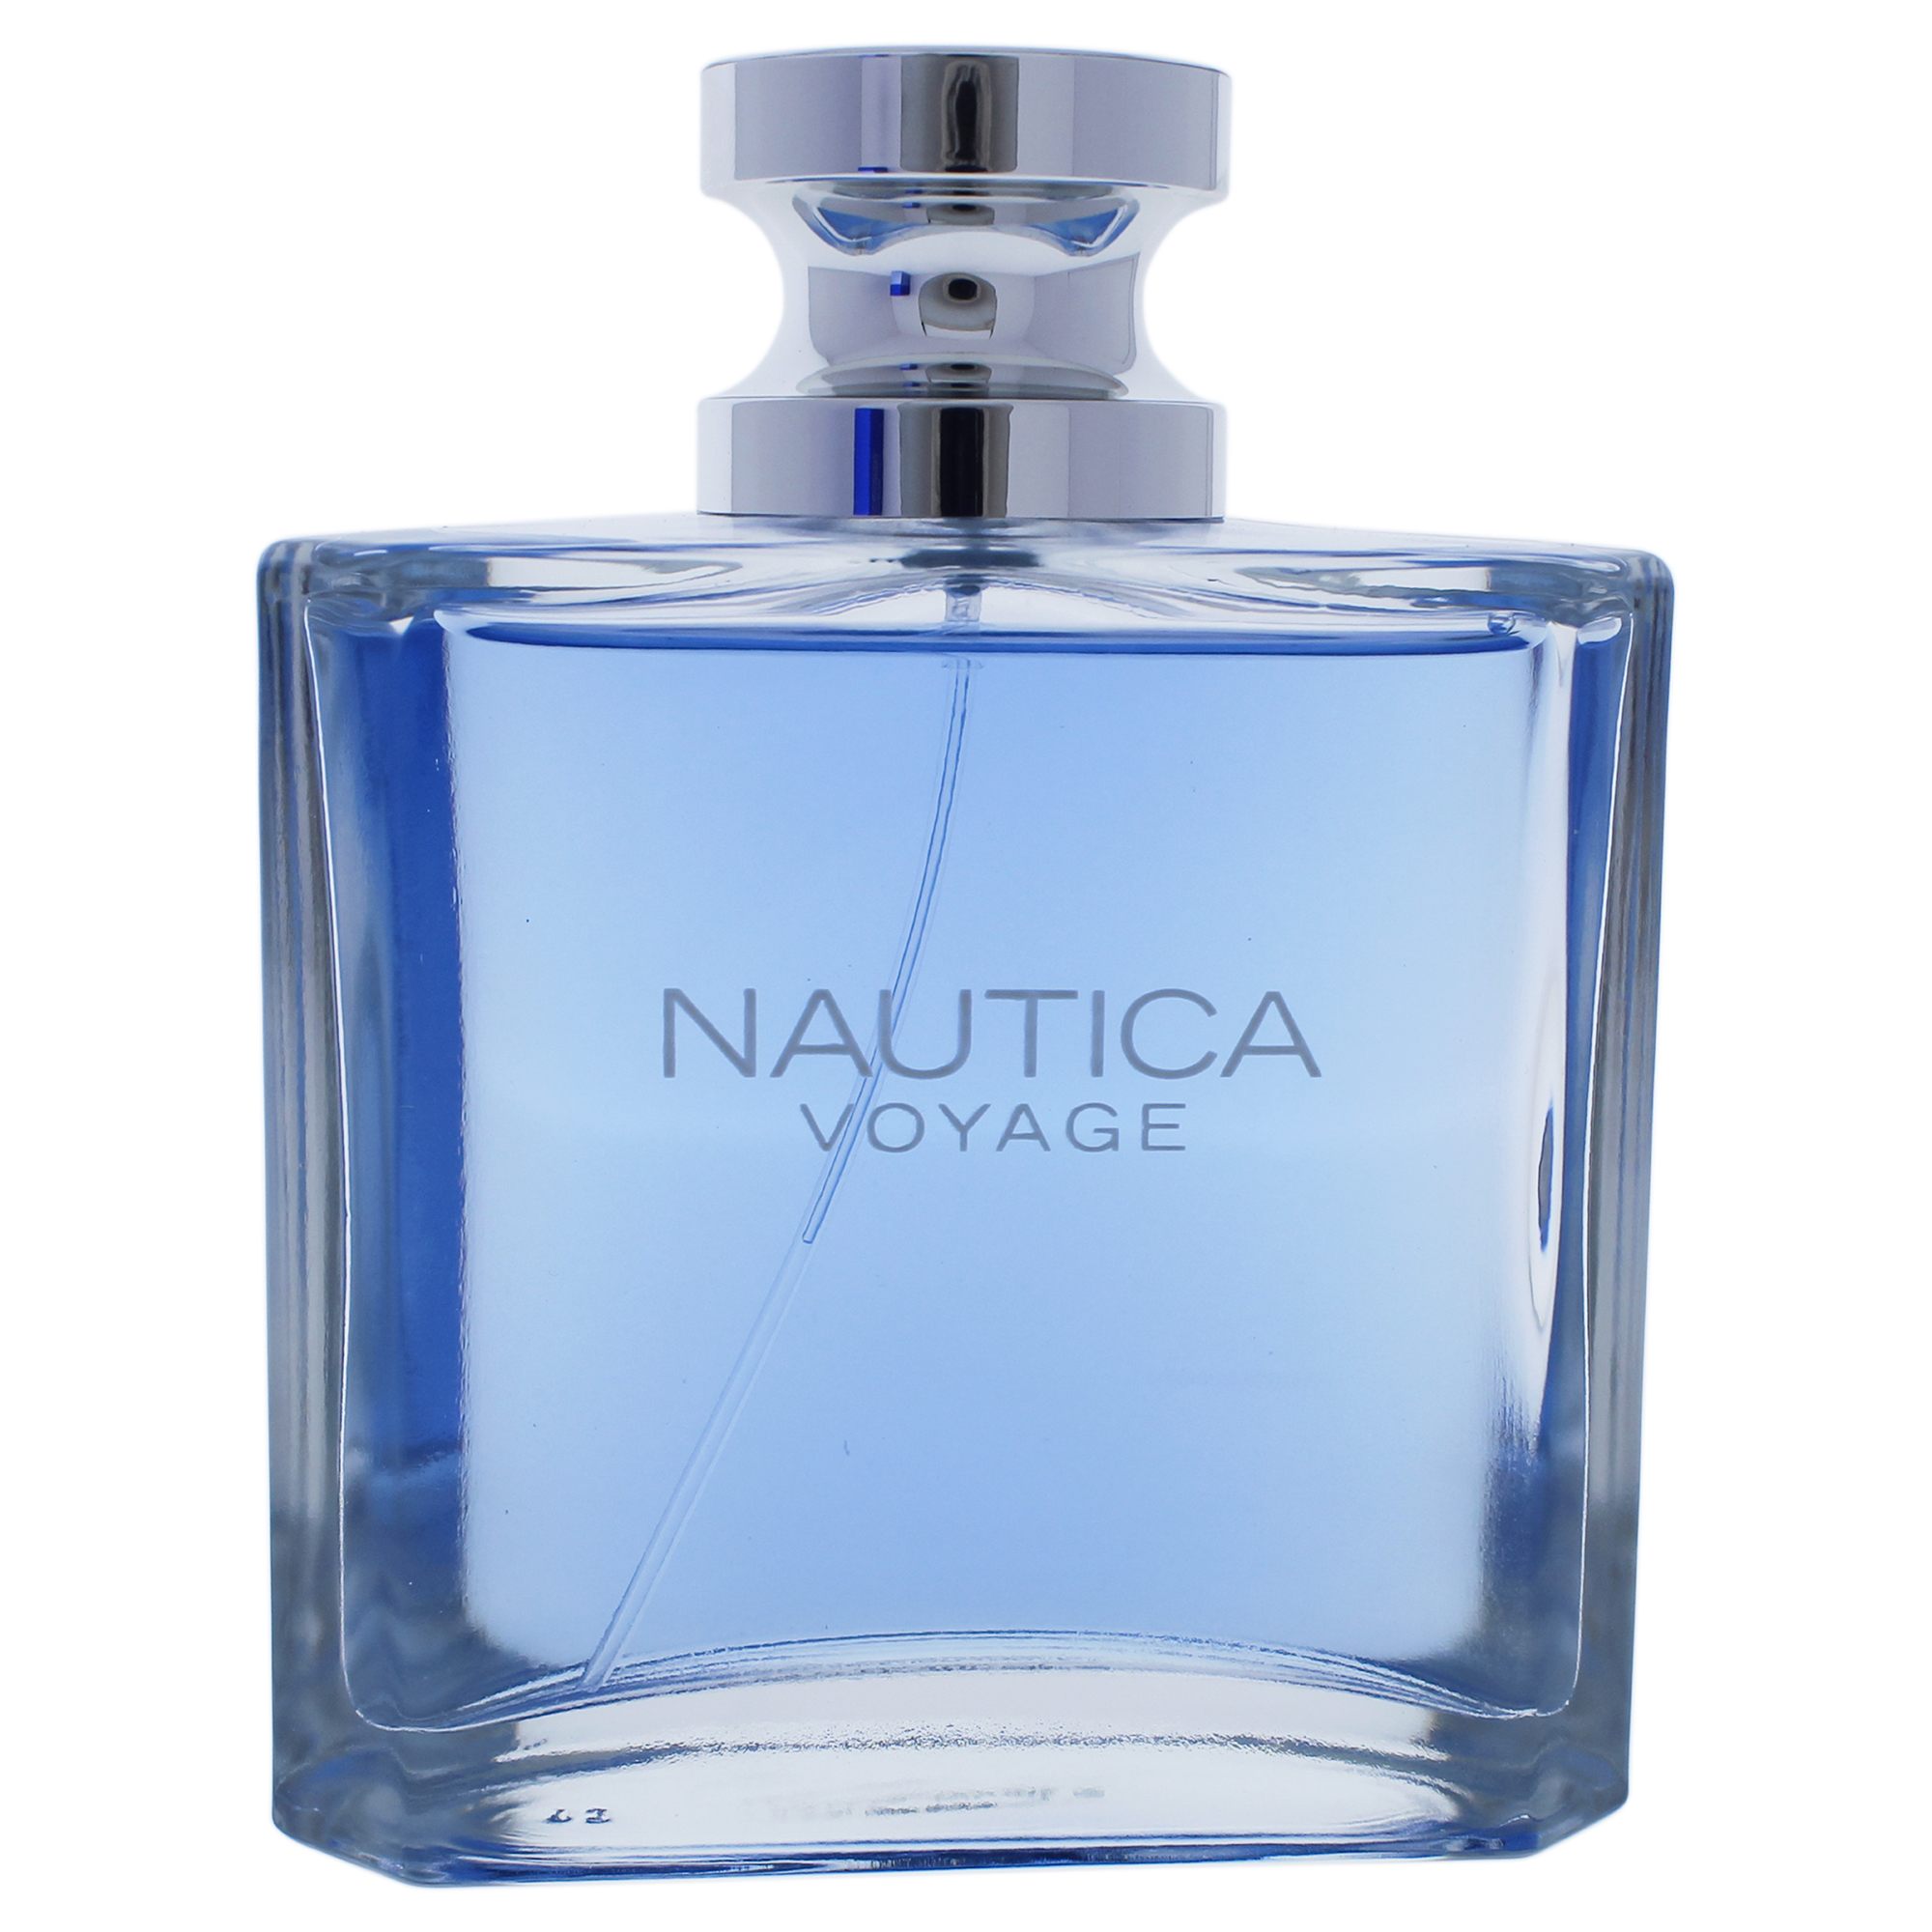 Nautica Voyage by Nautica Eau de Toilette Men's Spray Cologne - 3.4 fl oz